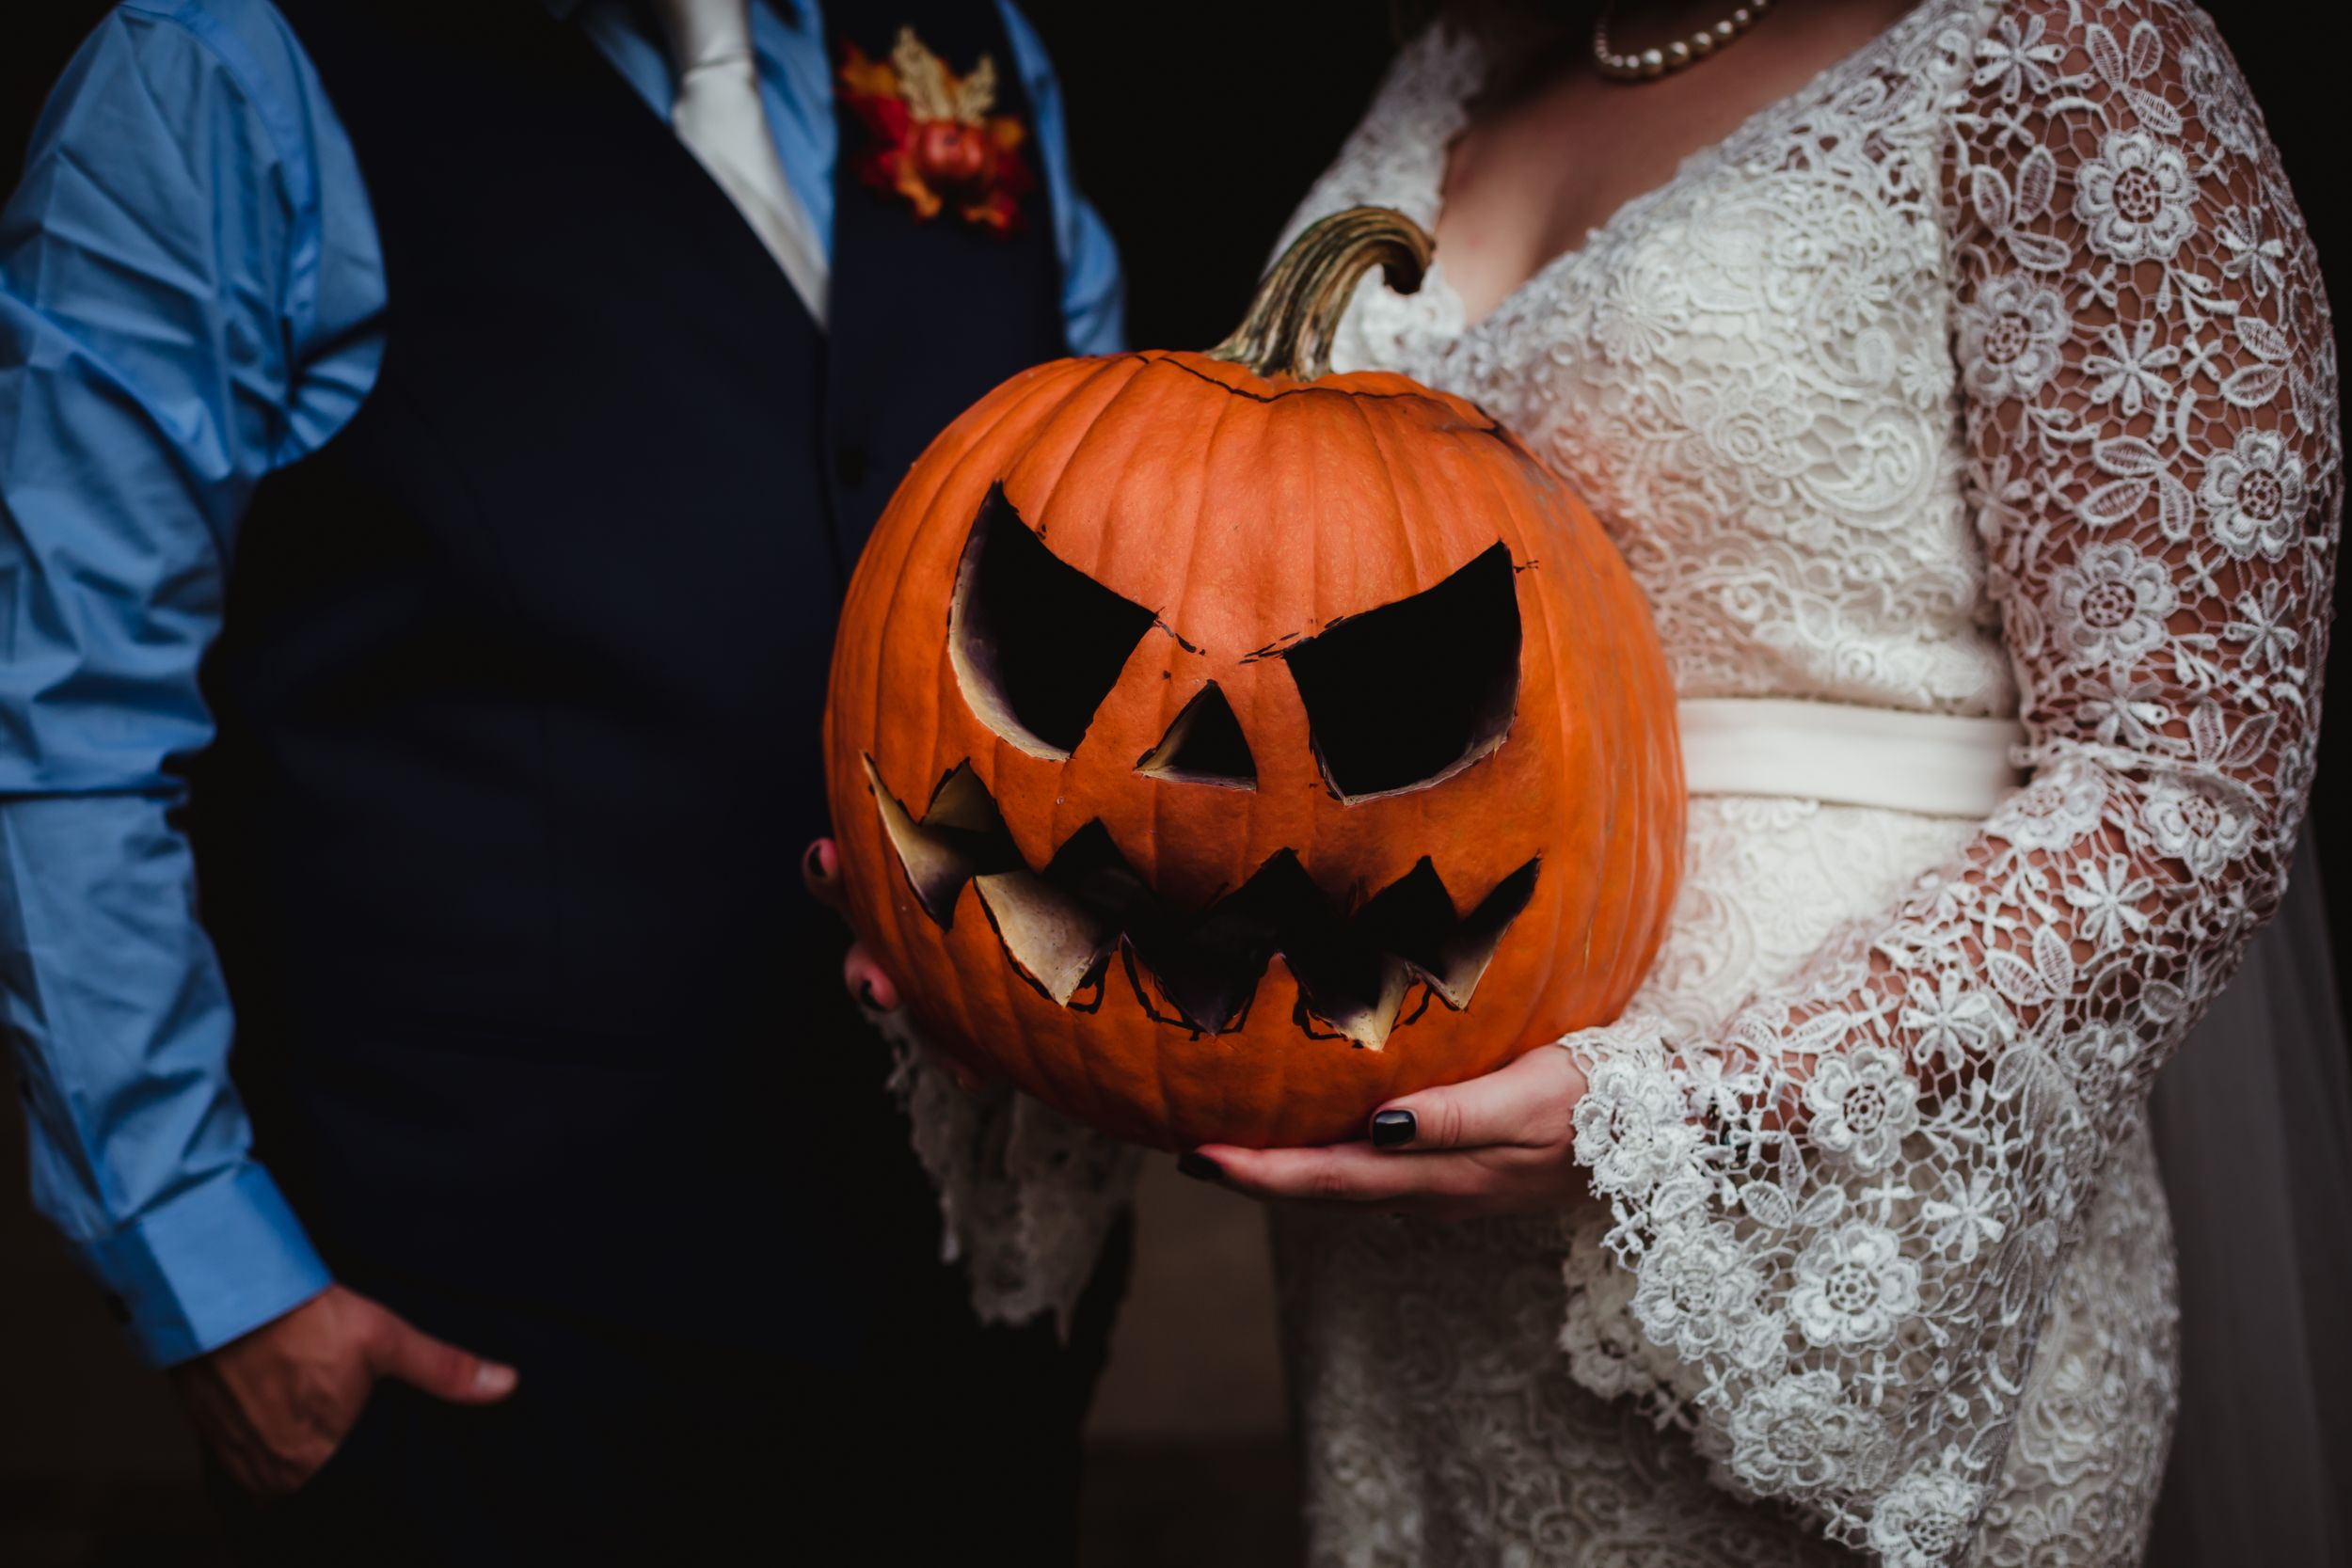 Close up of a jack-o-lantern being held by a man and woman in wedding attire.